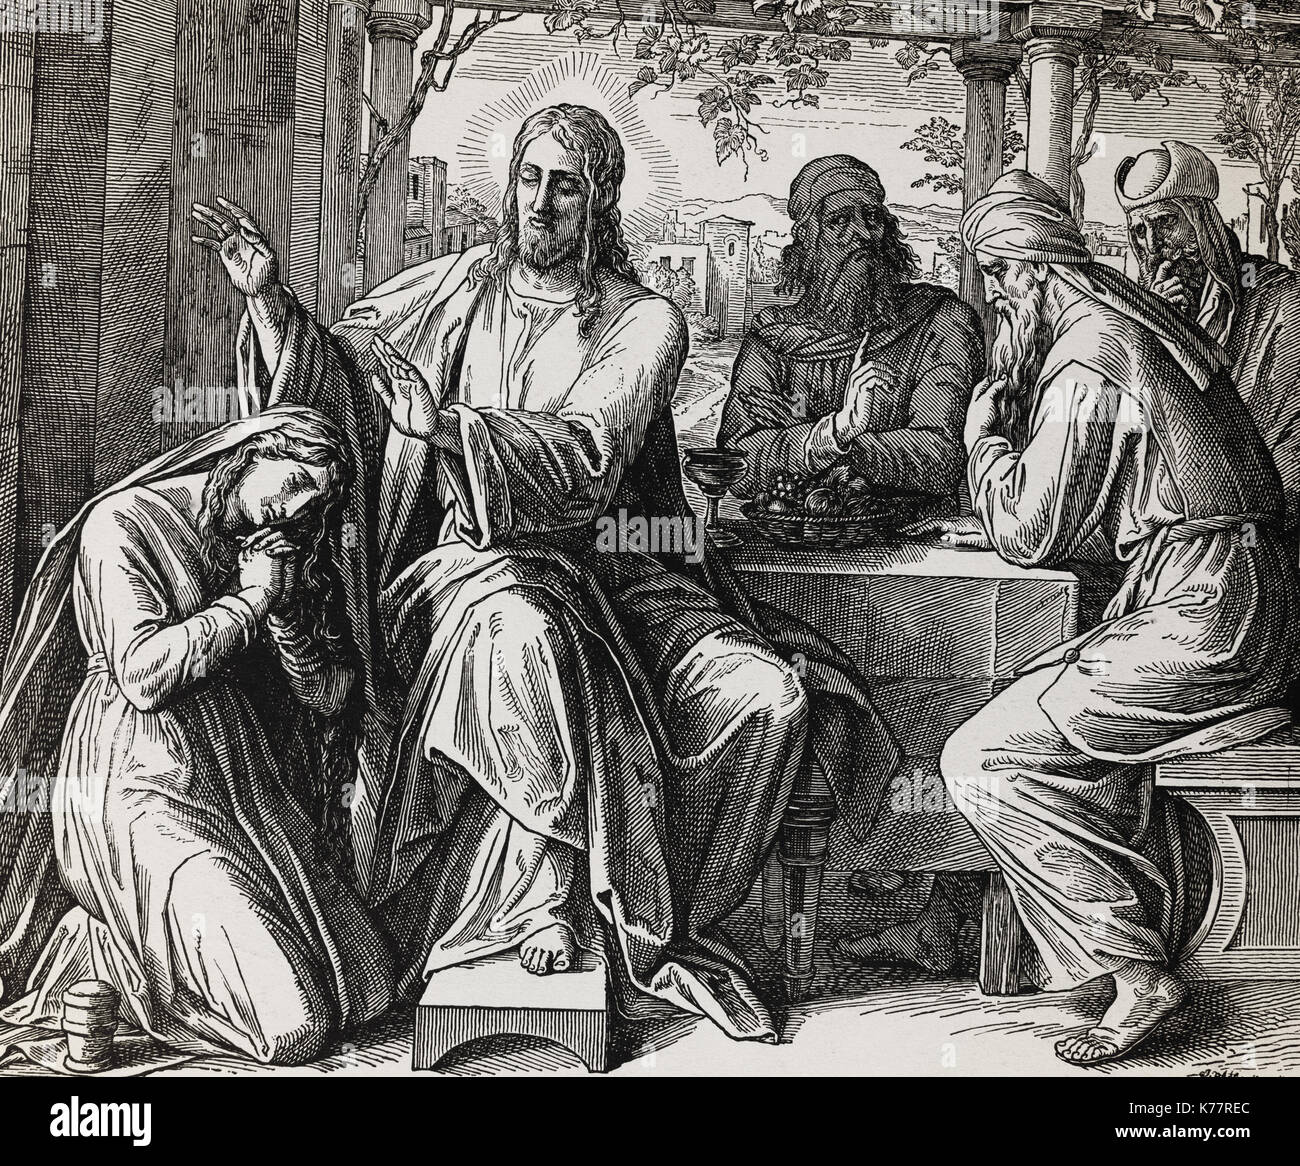 Jesus giving blessing, love and forgiveness to a woman, graphic collage from engraving of Nazareene School, published in The Holy Bible, St.Vojtech Publishing, Trnava, Slovakia, 1937. - Stock Image